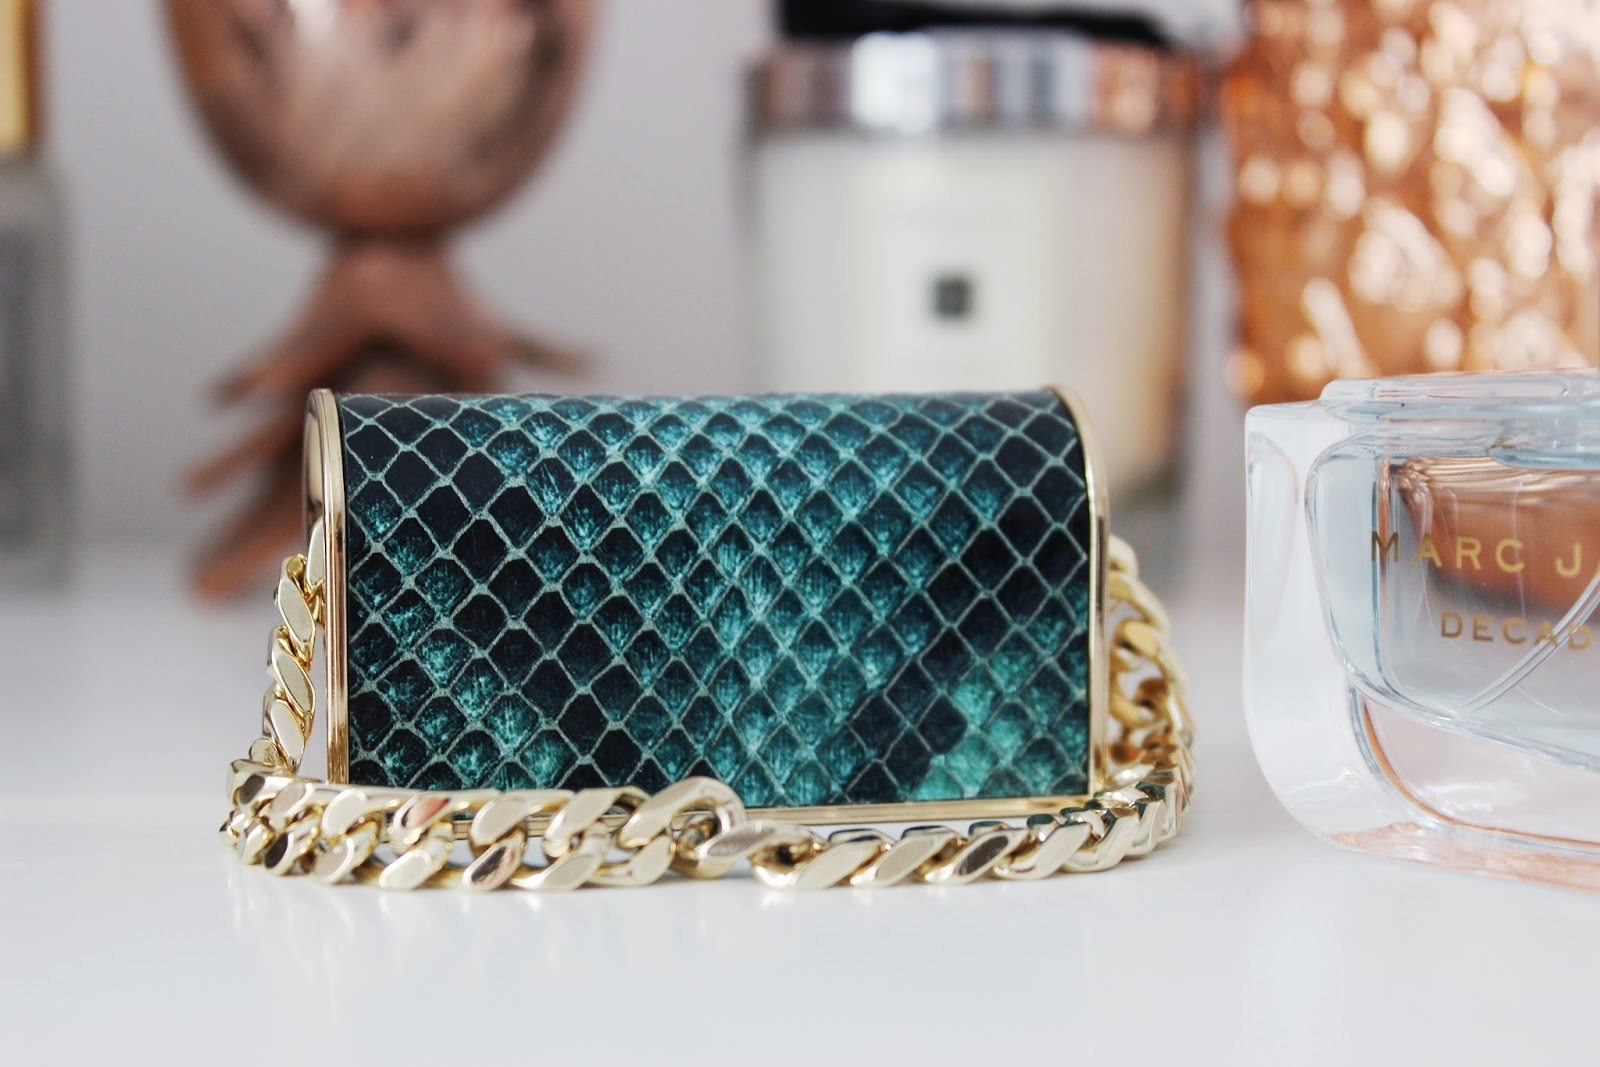 Marc Jacobs Divine Decadence fragrance review